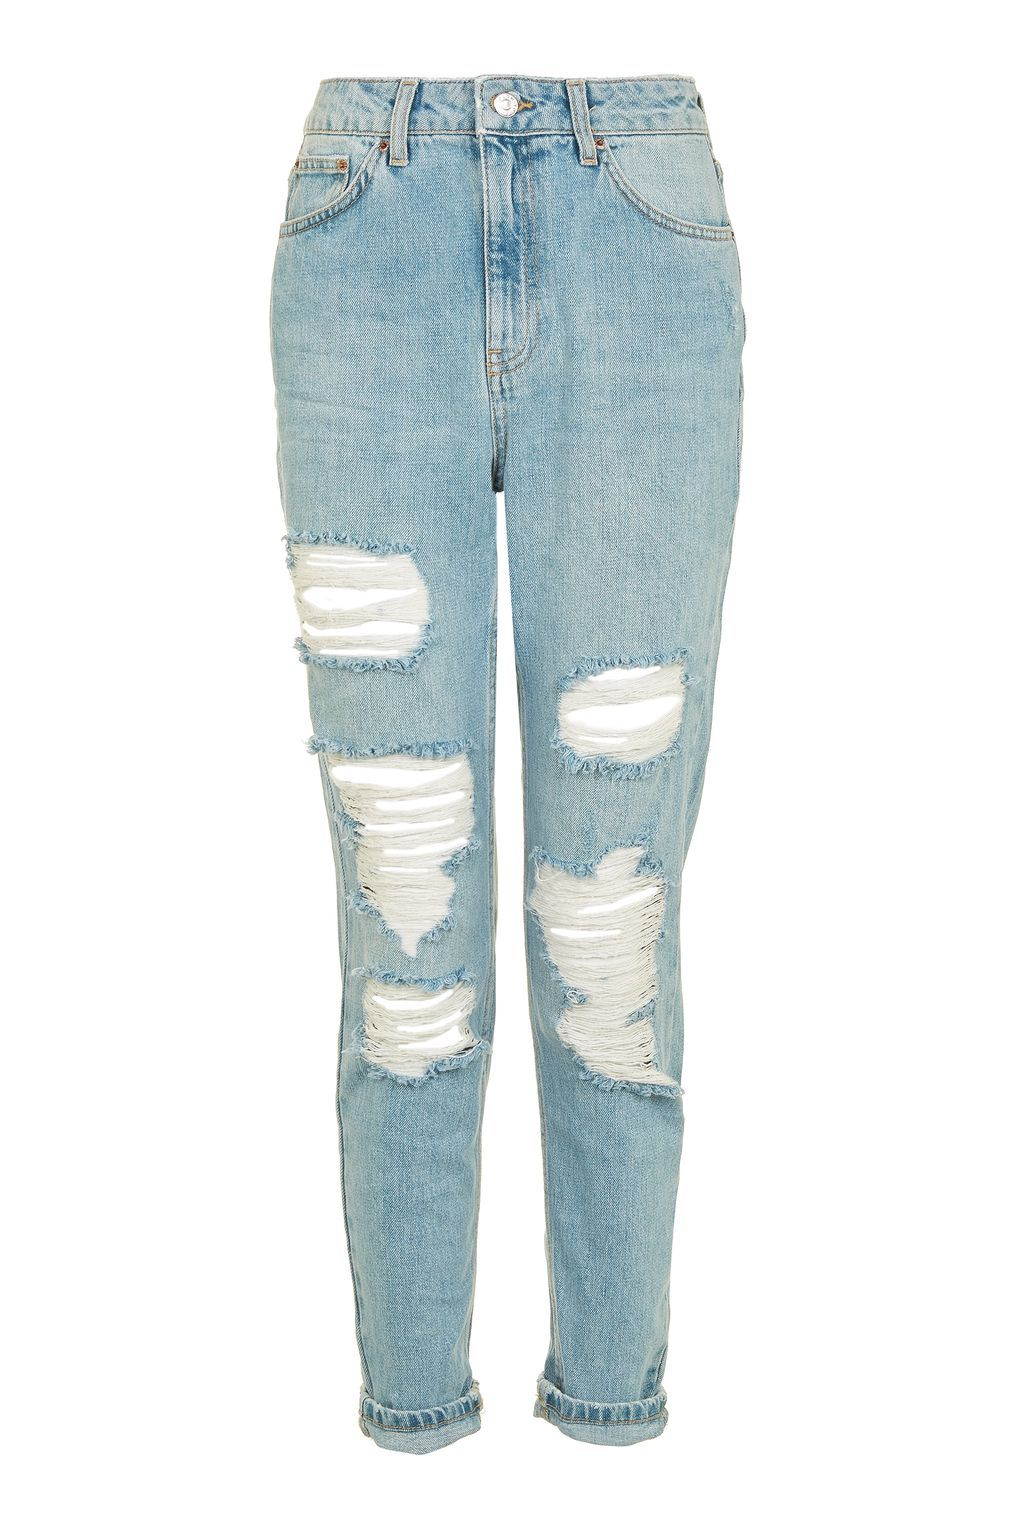 e3293138154 Carousel Image 0 High Waisted Distressed Jeans, Blue Ripped Jeans, Bleached  Jeans, Cuffed